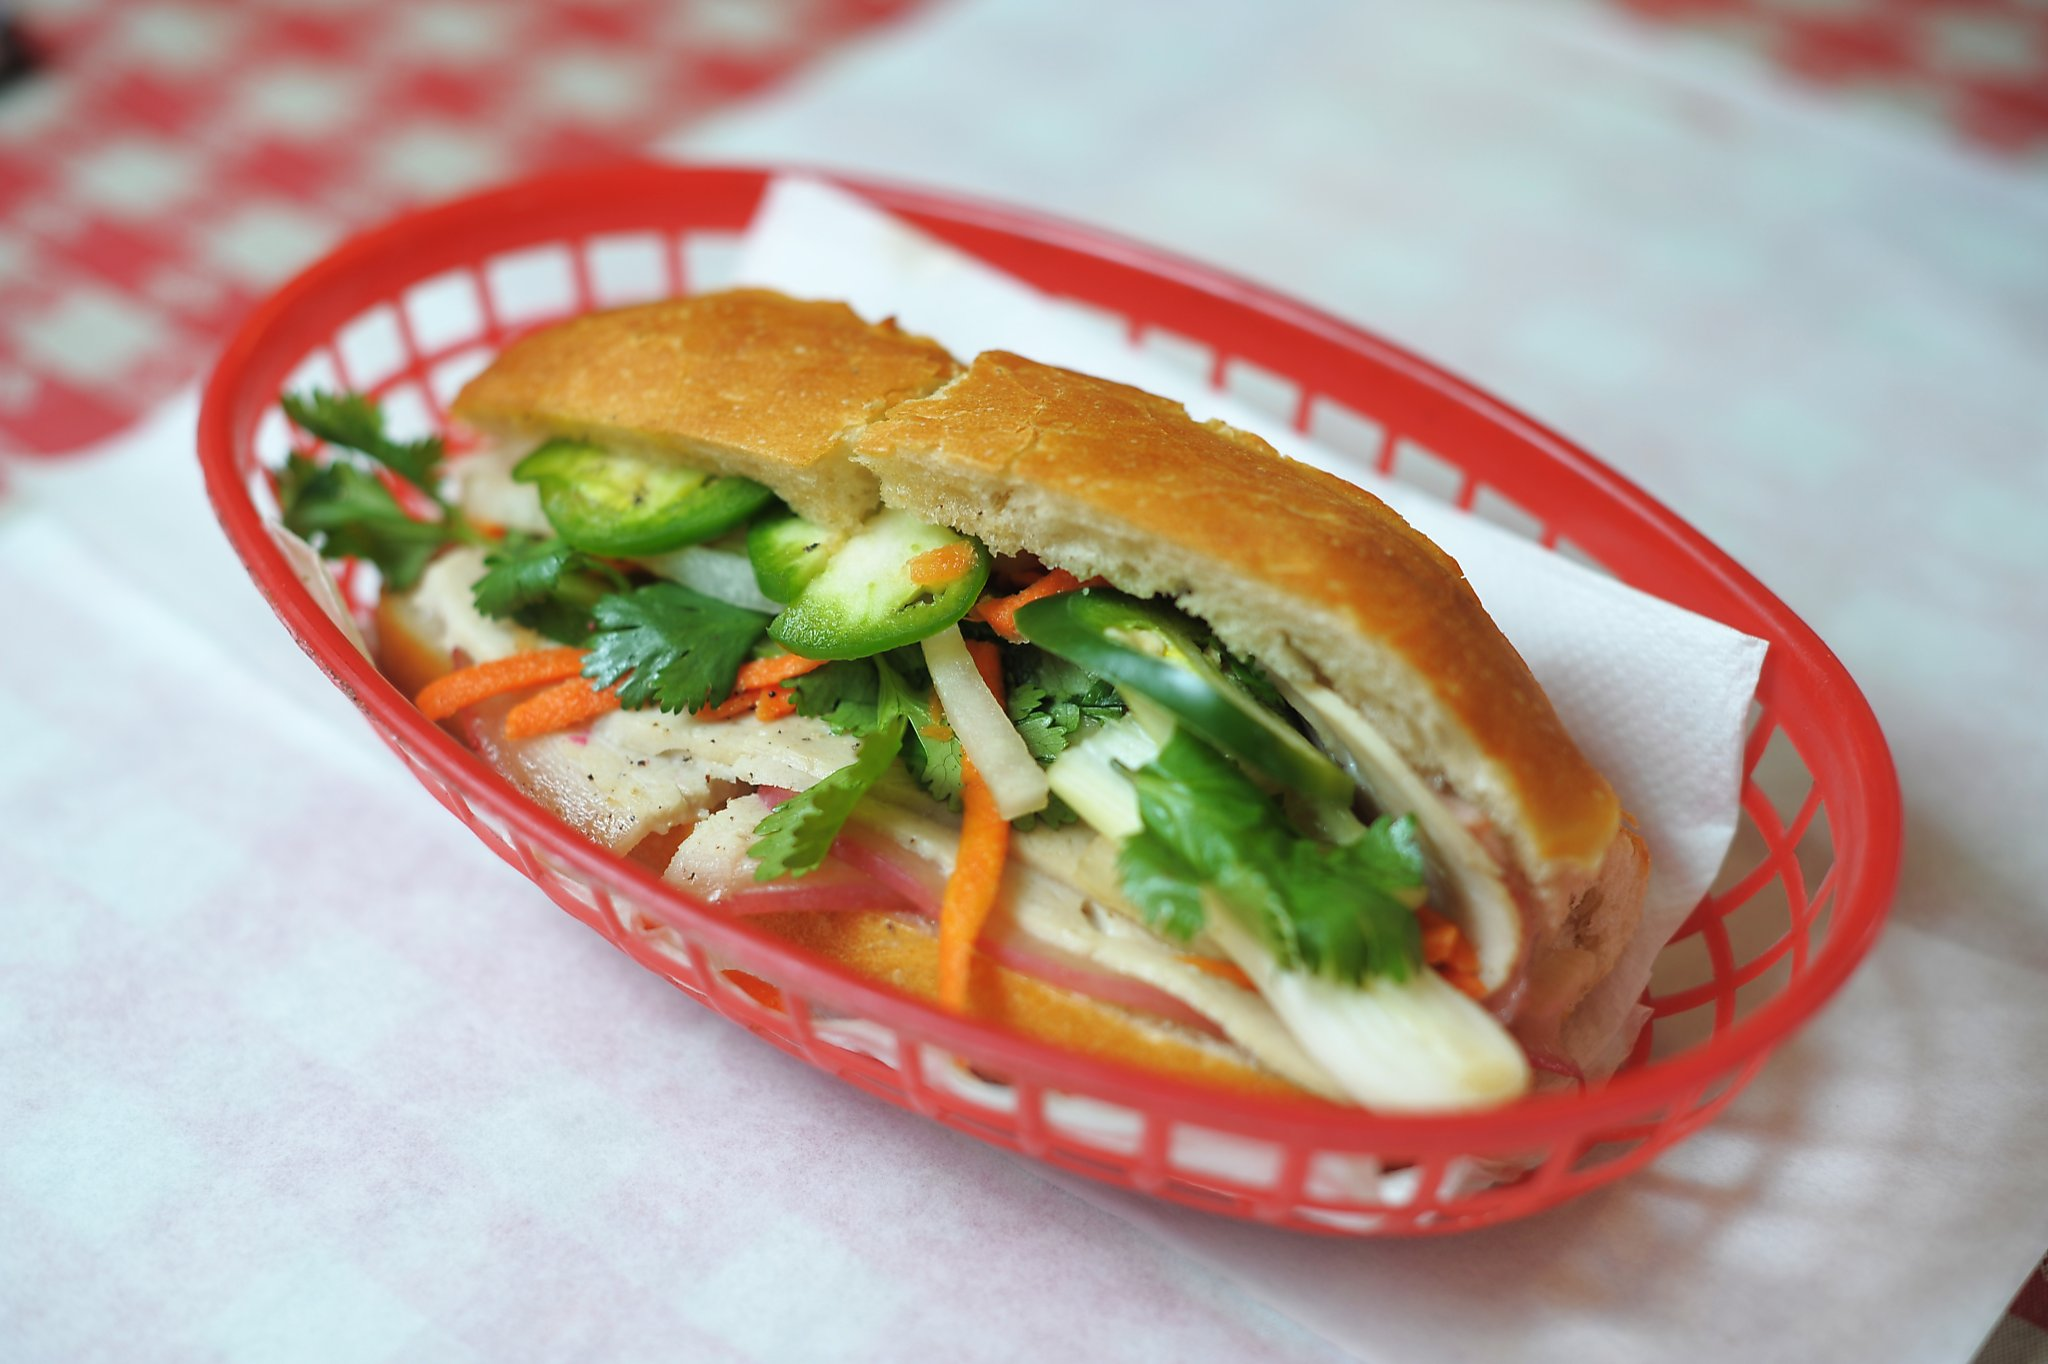 Andrea Nguyen shows what makes banh mi so special